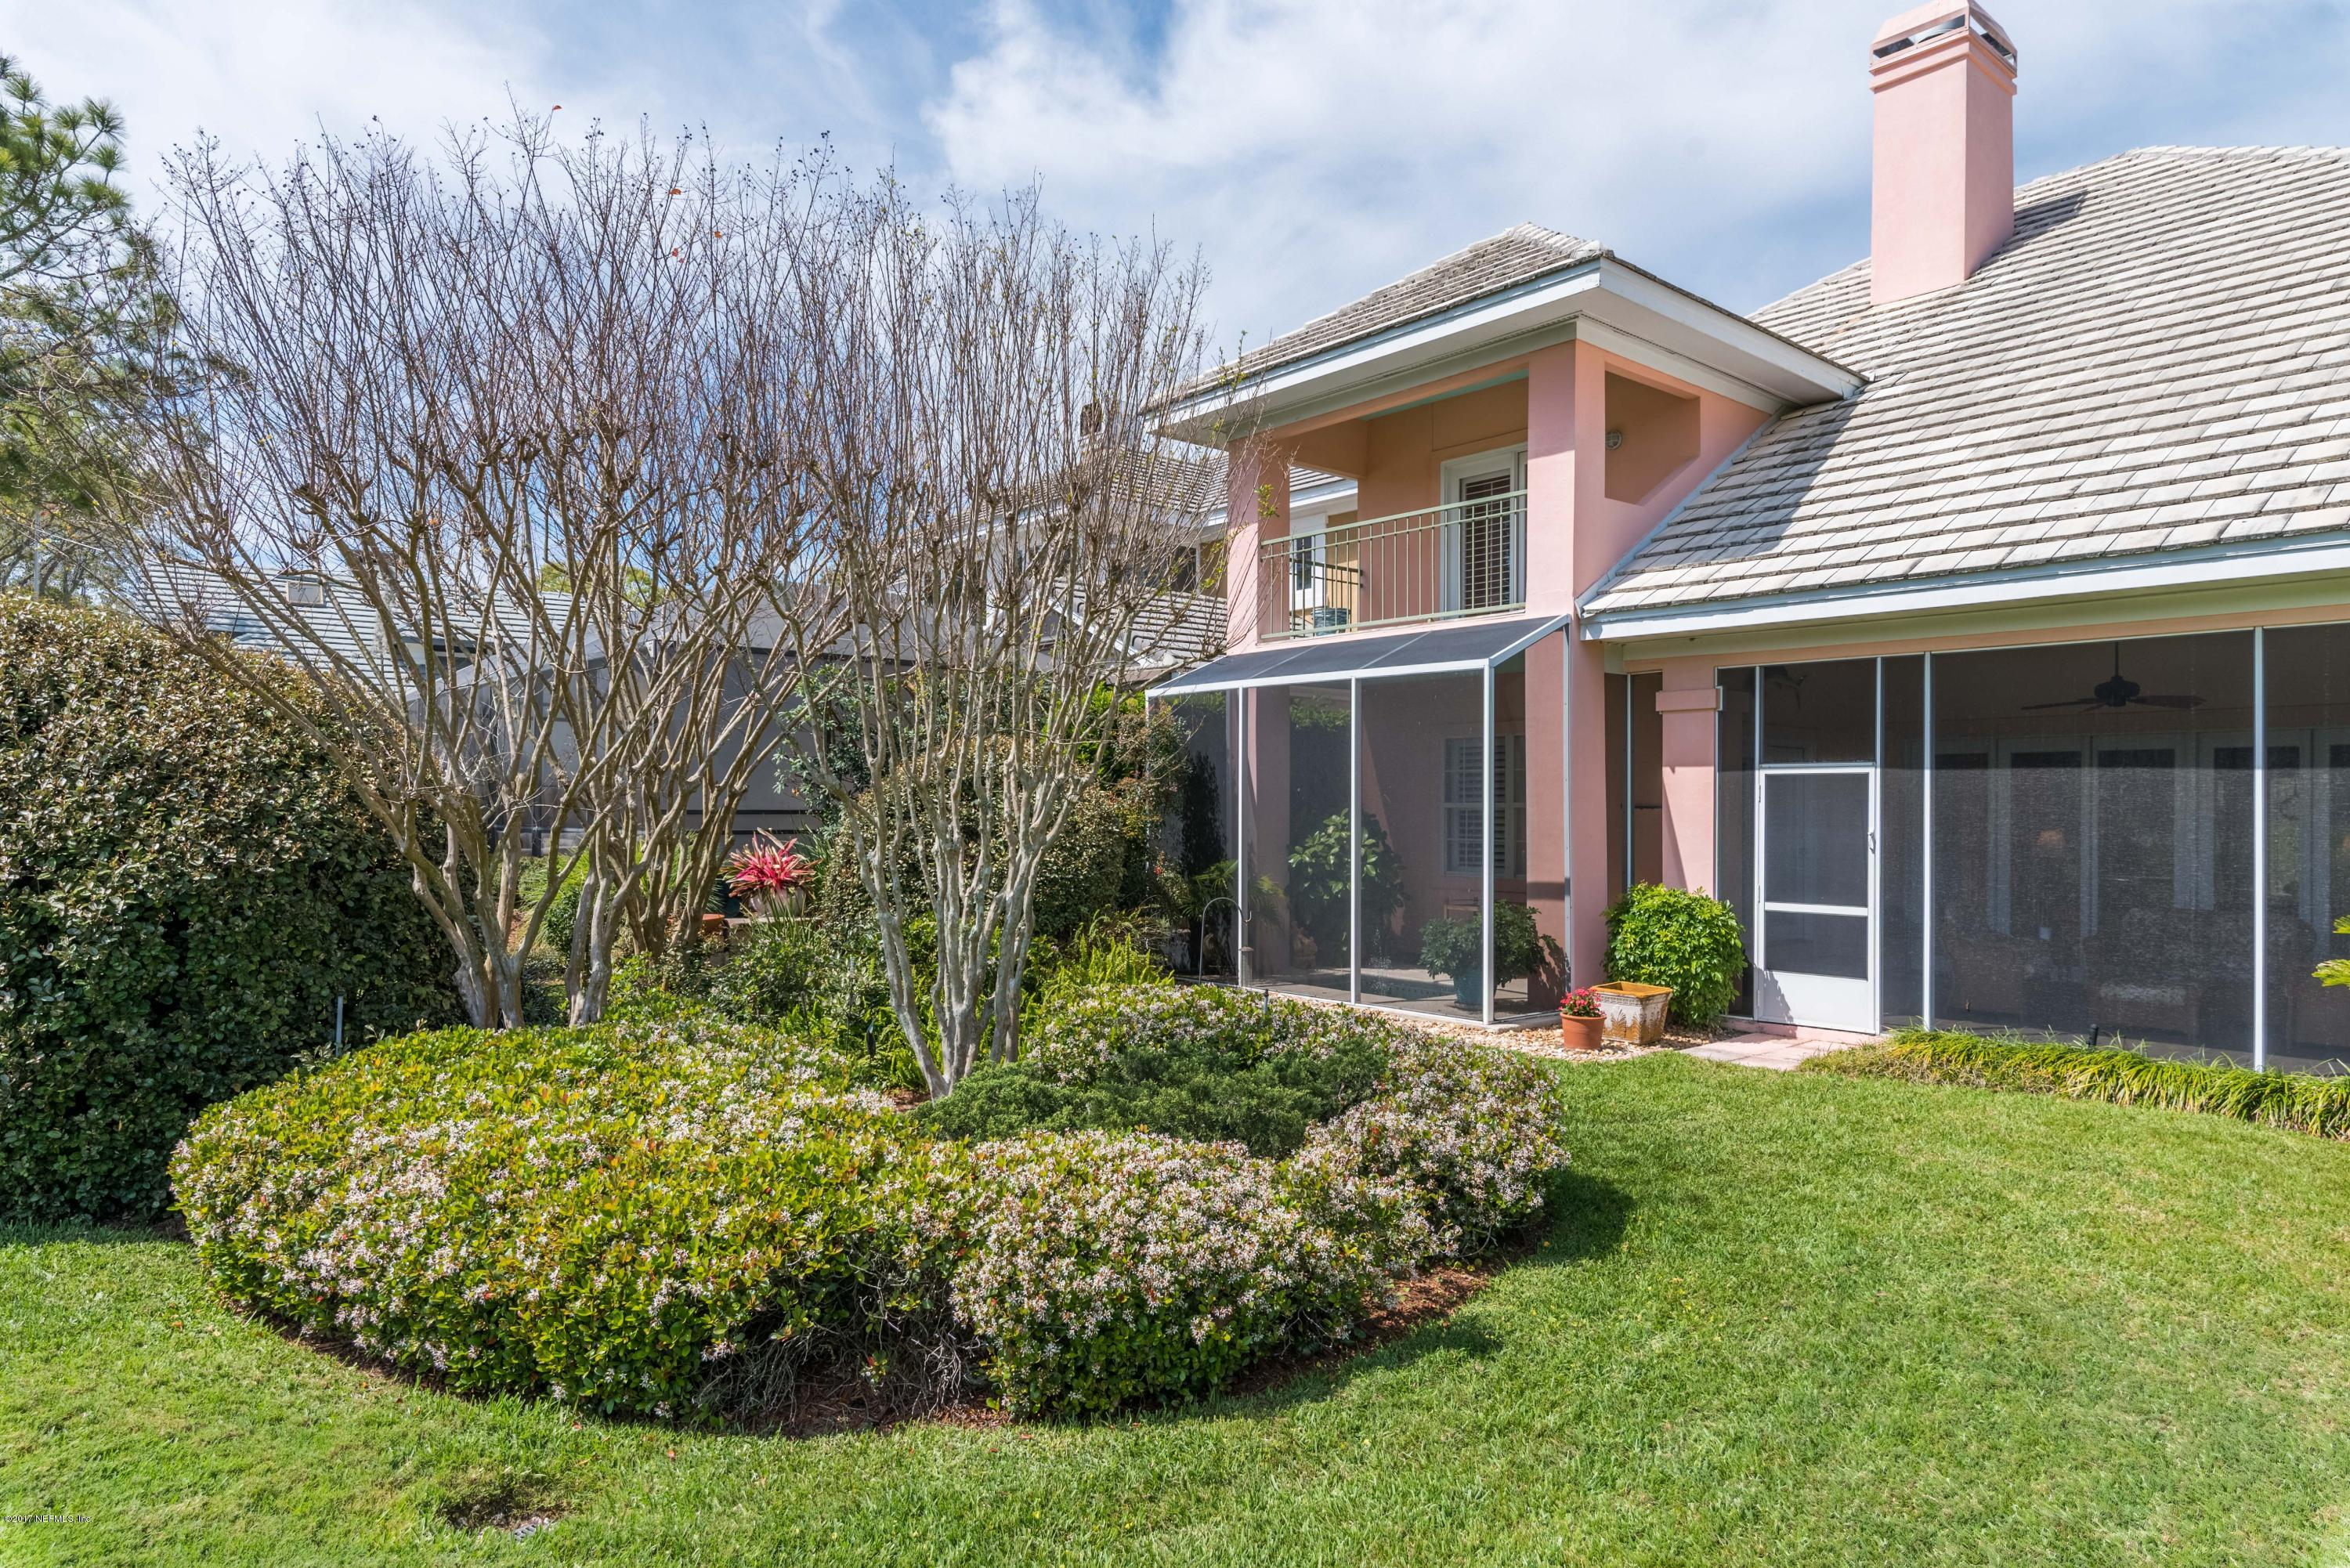 196 LAUREL, PONTE VEDRA BEACH, FLORIDA 32082, 3 Bedrooms Bedrooms, ,3 BathroomsBathrooms,Residential - single family,For sale,LAUREL,871281